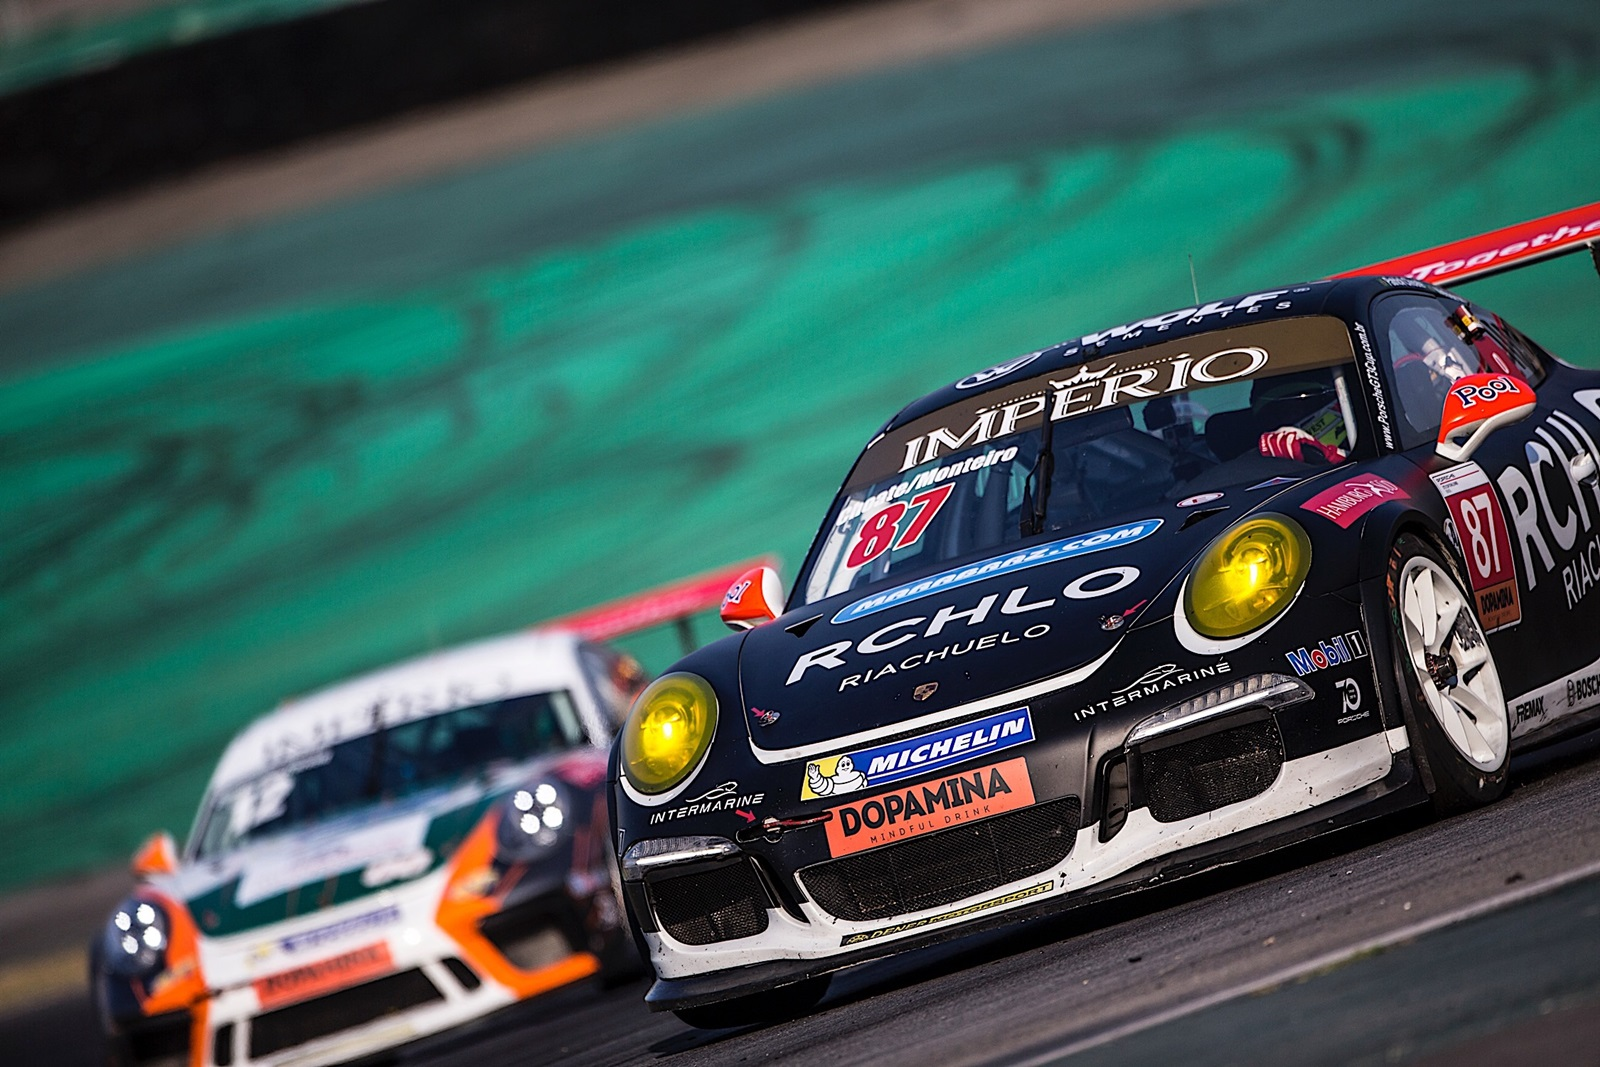 Photo of Porsche Cup Endurance – RCHLO Racing conquista vitória na Porsche GT3 Cup Endurance Series em Interlagos